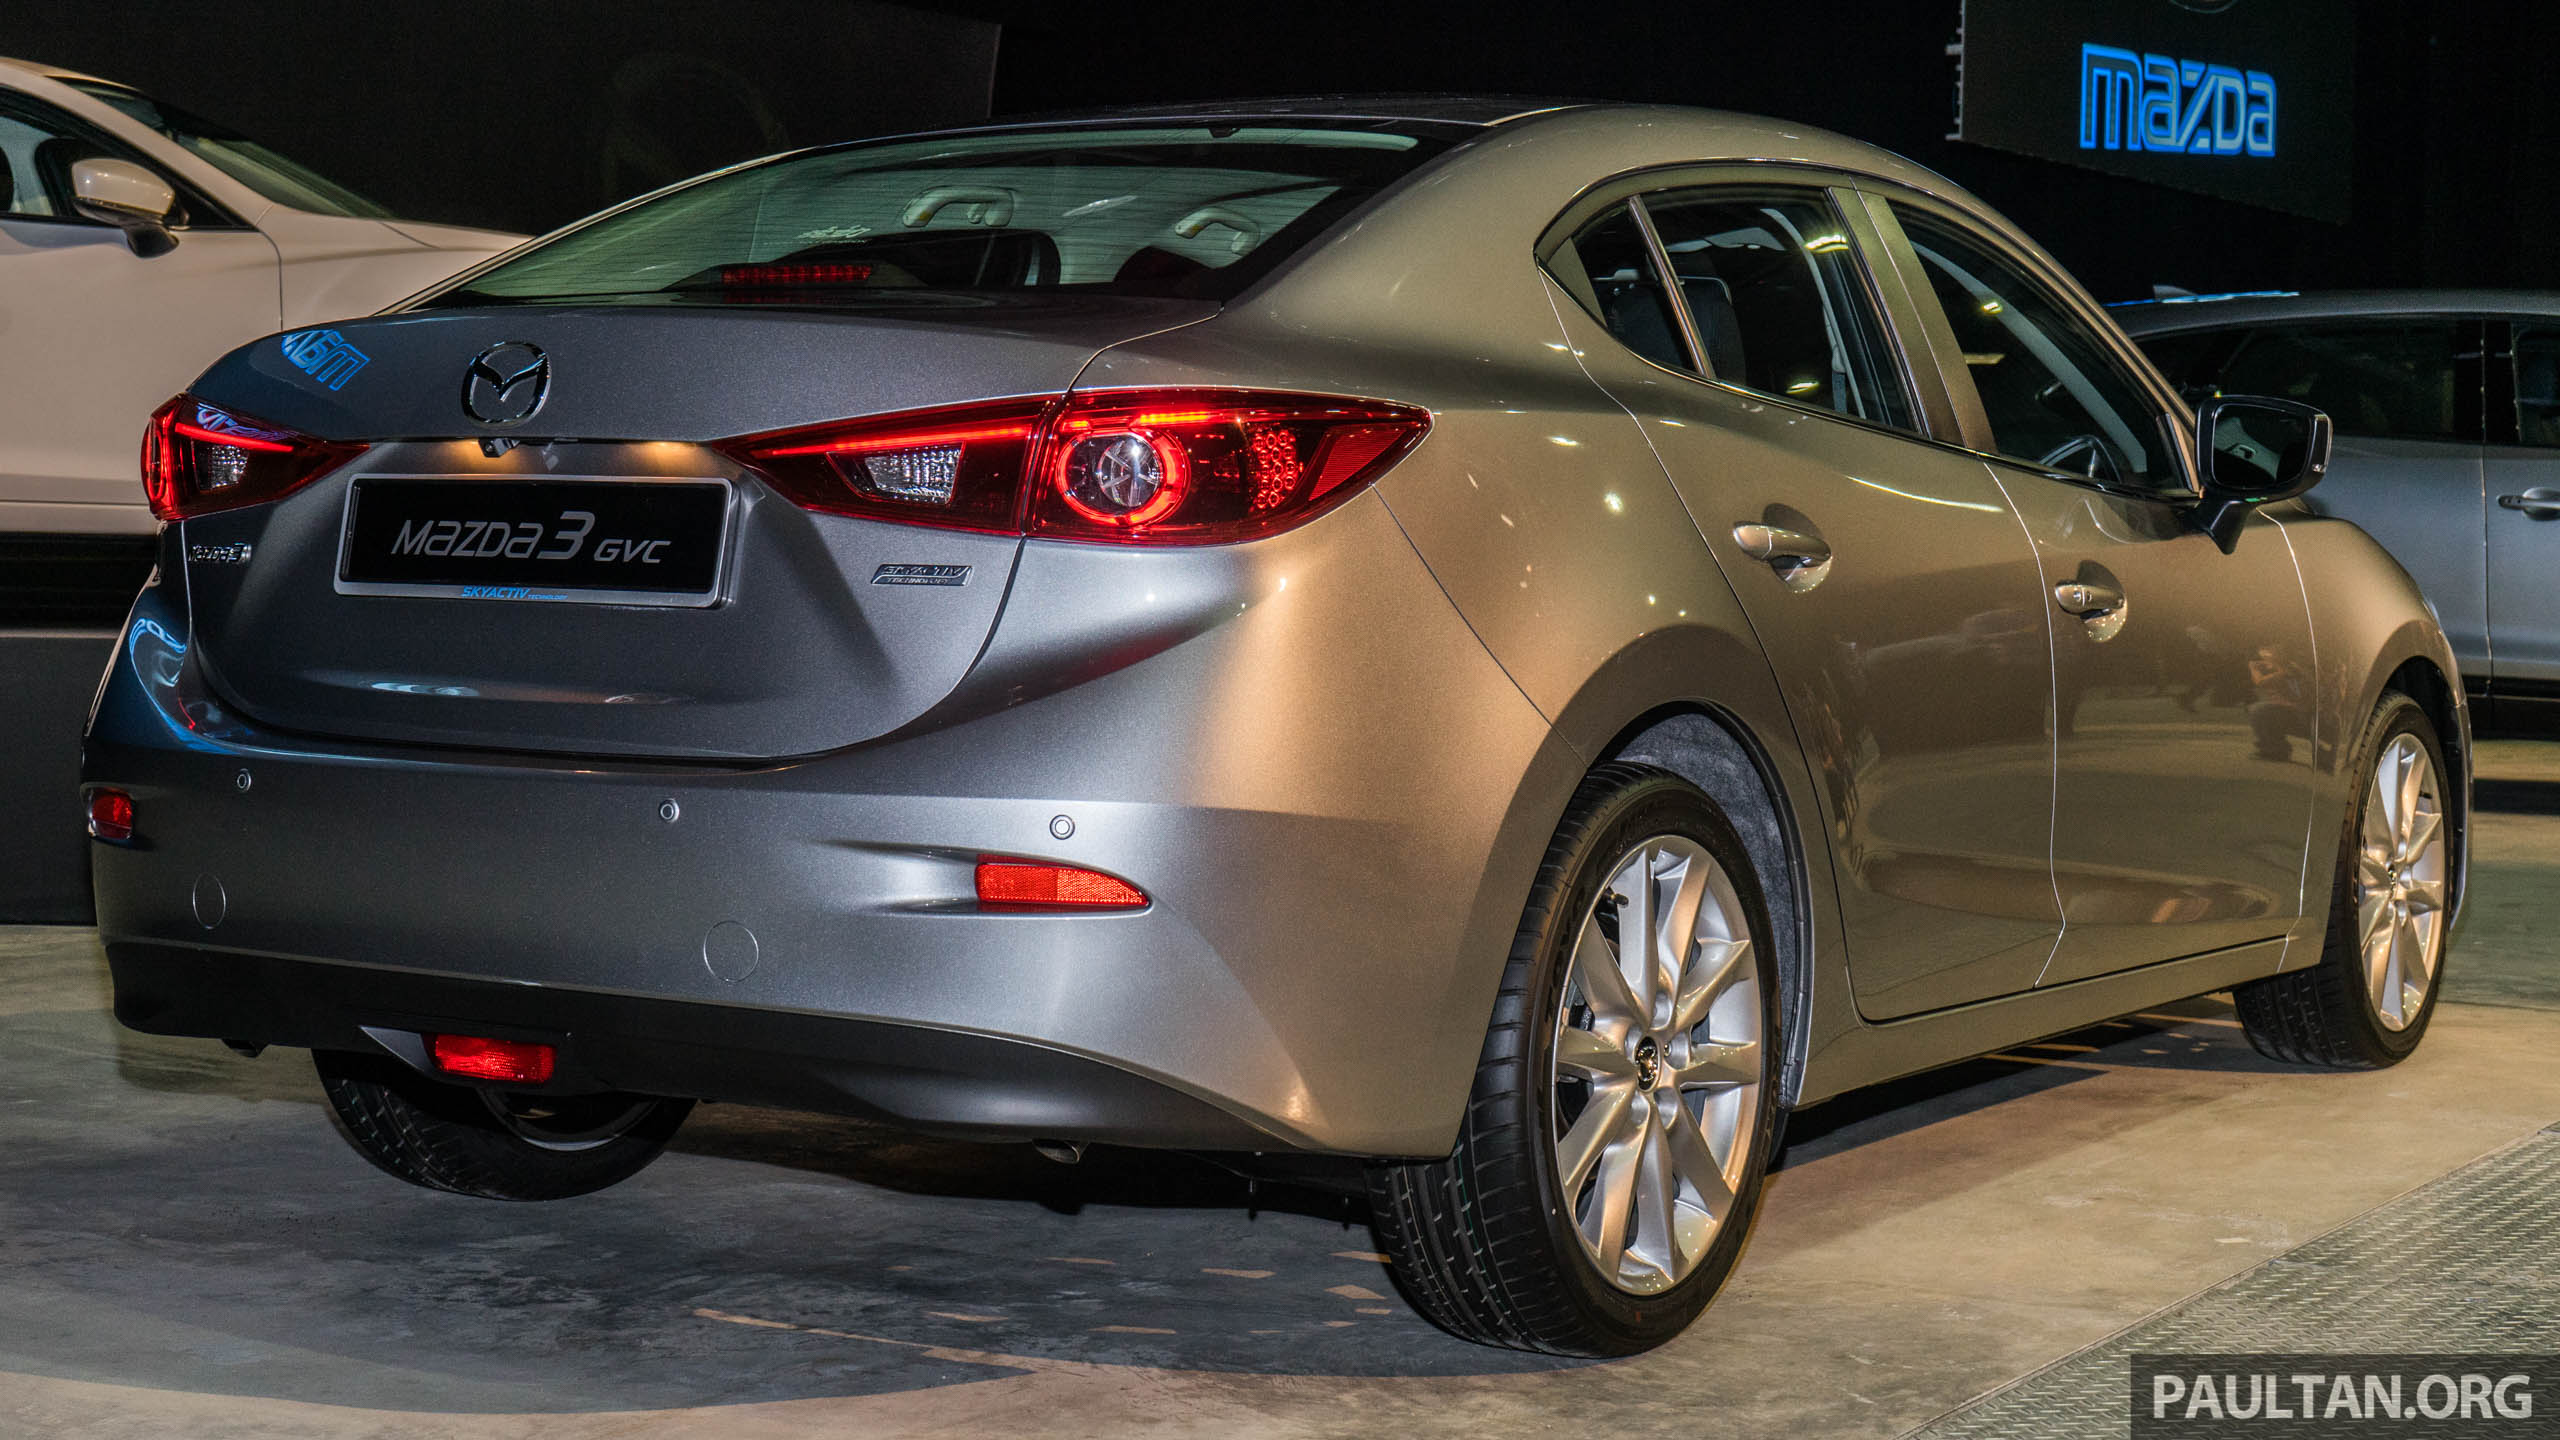 2017 mazda 3 facelift launched in malaysia now with g vectoring control three variants from. Black Bedroom Furniture Sets. Home Design Ideas